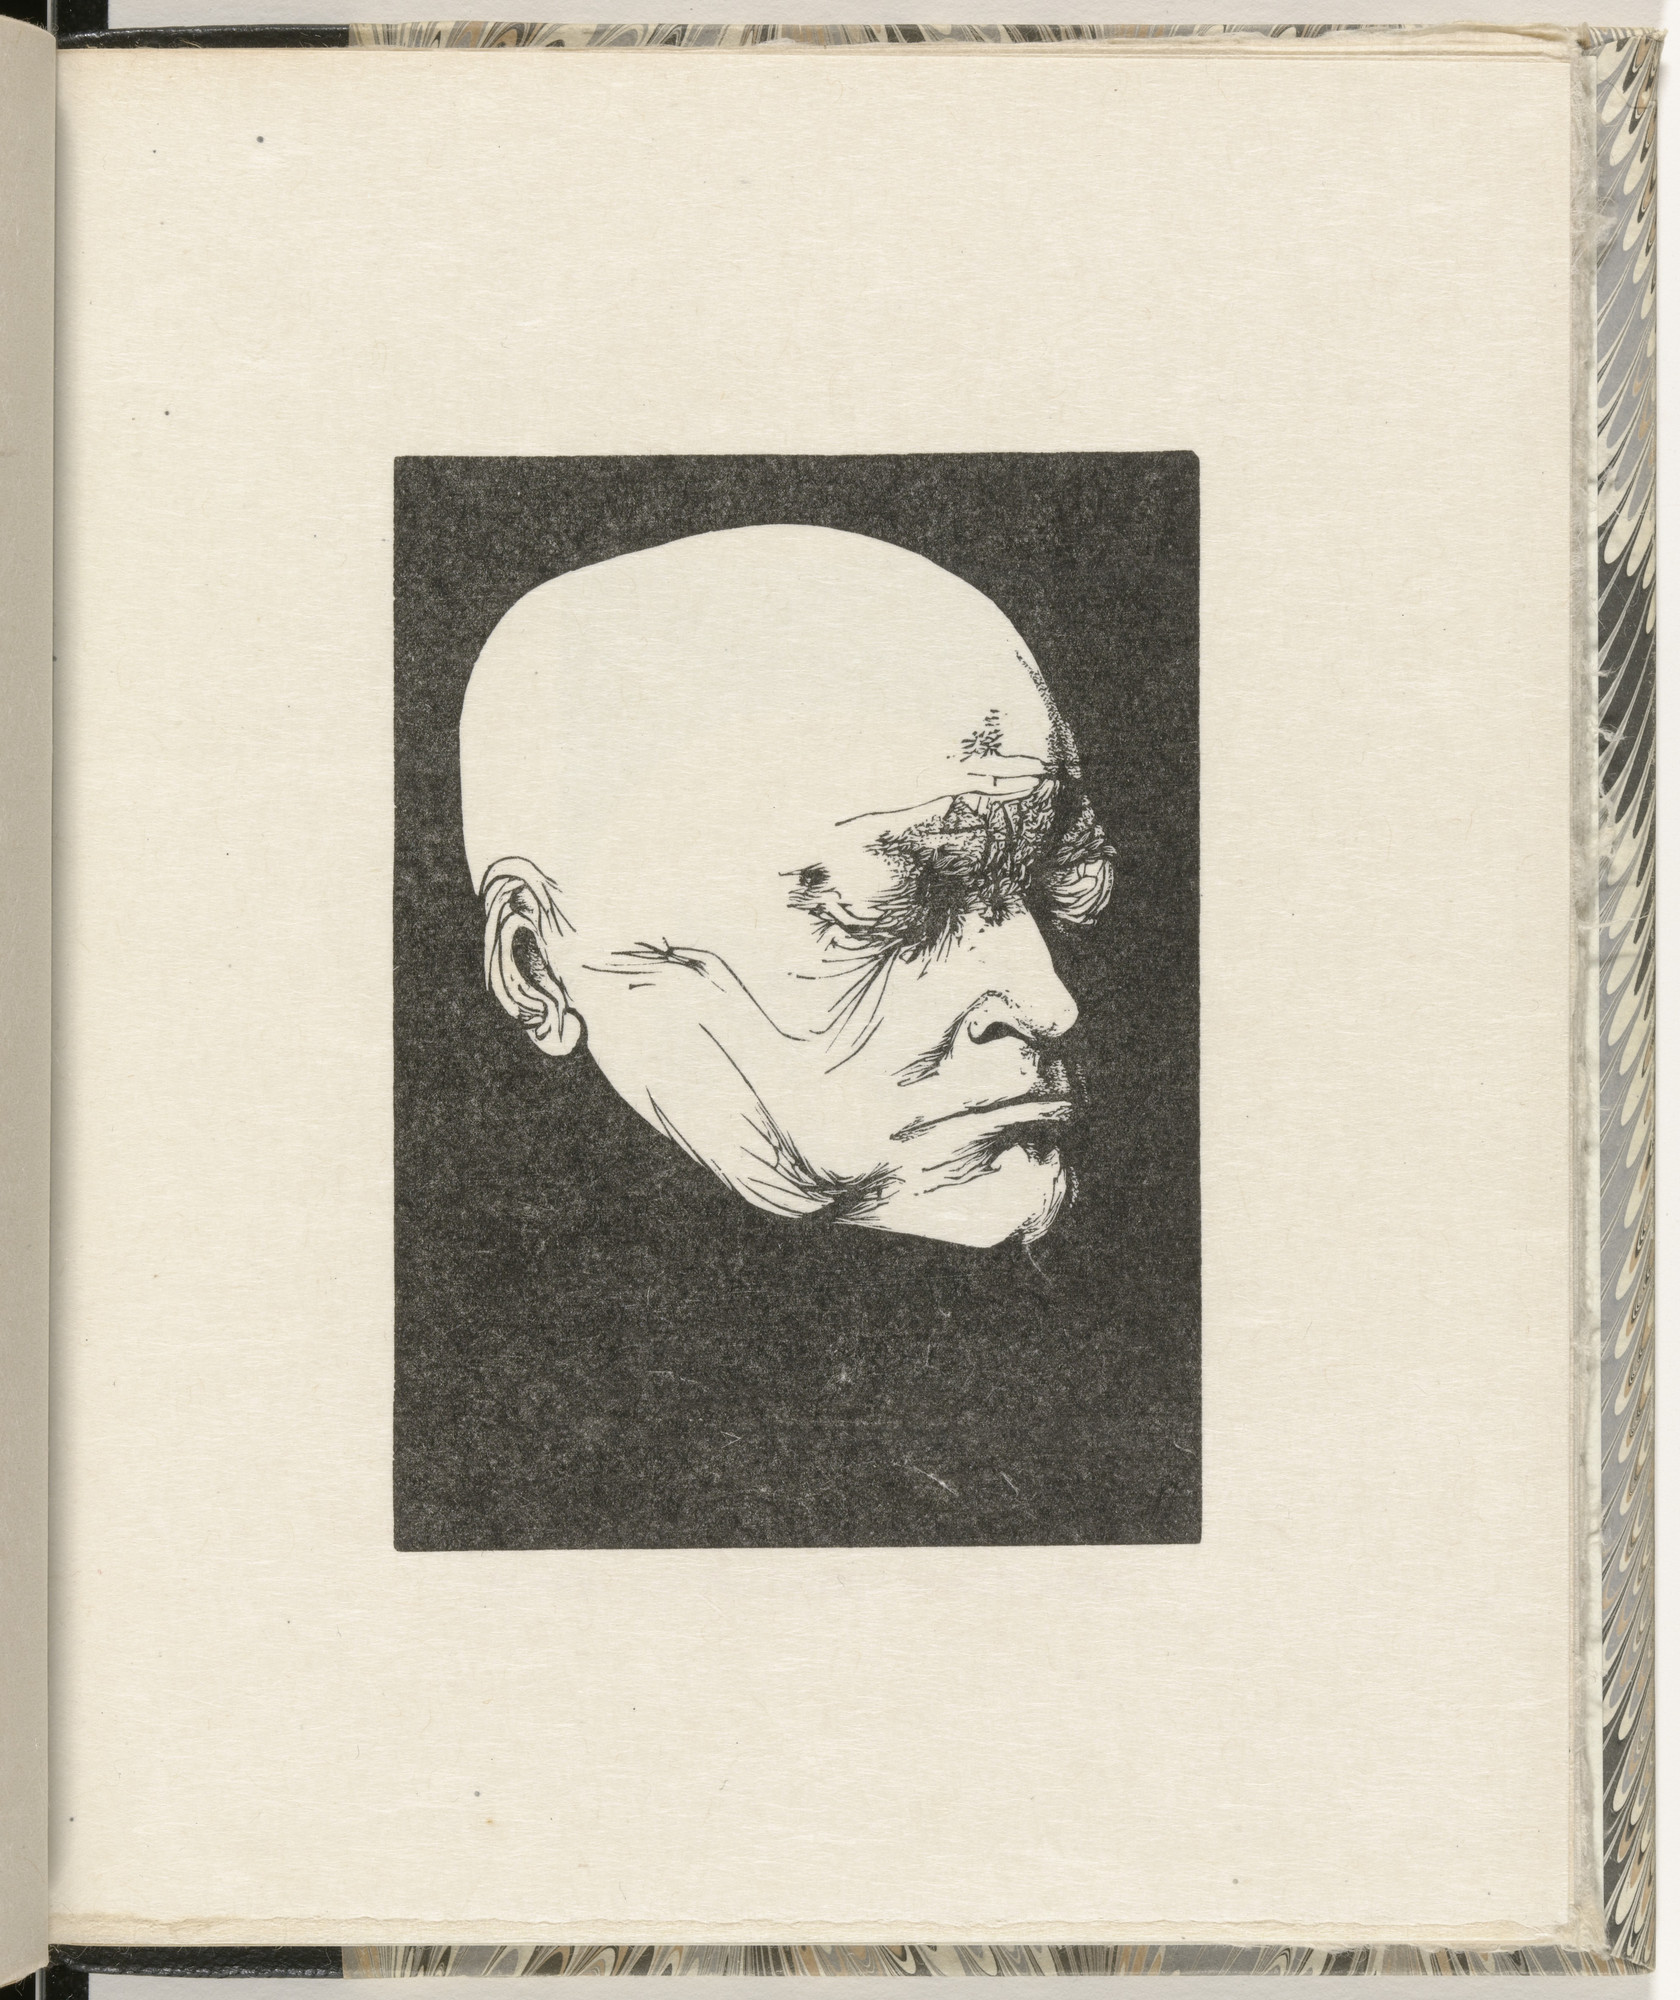 Leonard Baskin. Blake, from Life Mask by Deville (plate, folio 17) from Blake and the Youthful Ancients. 1956